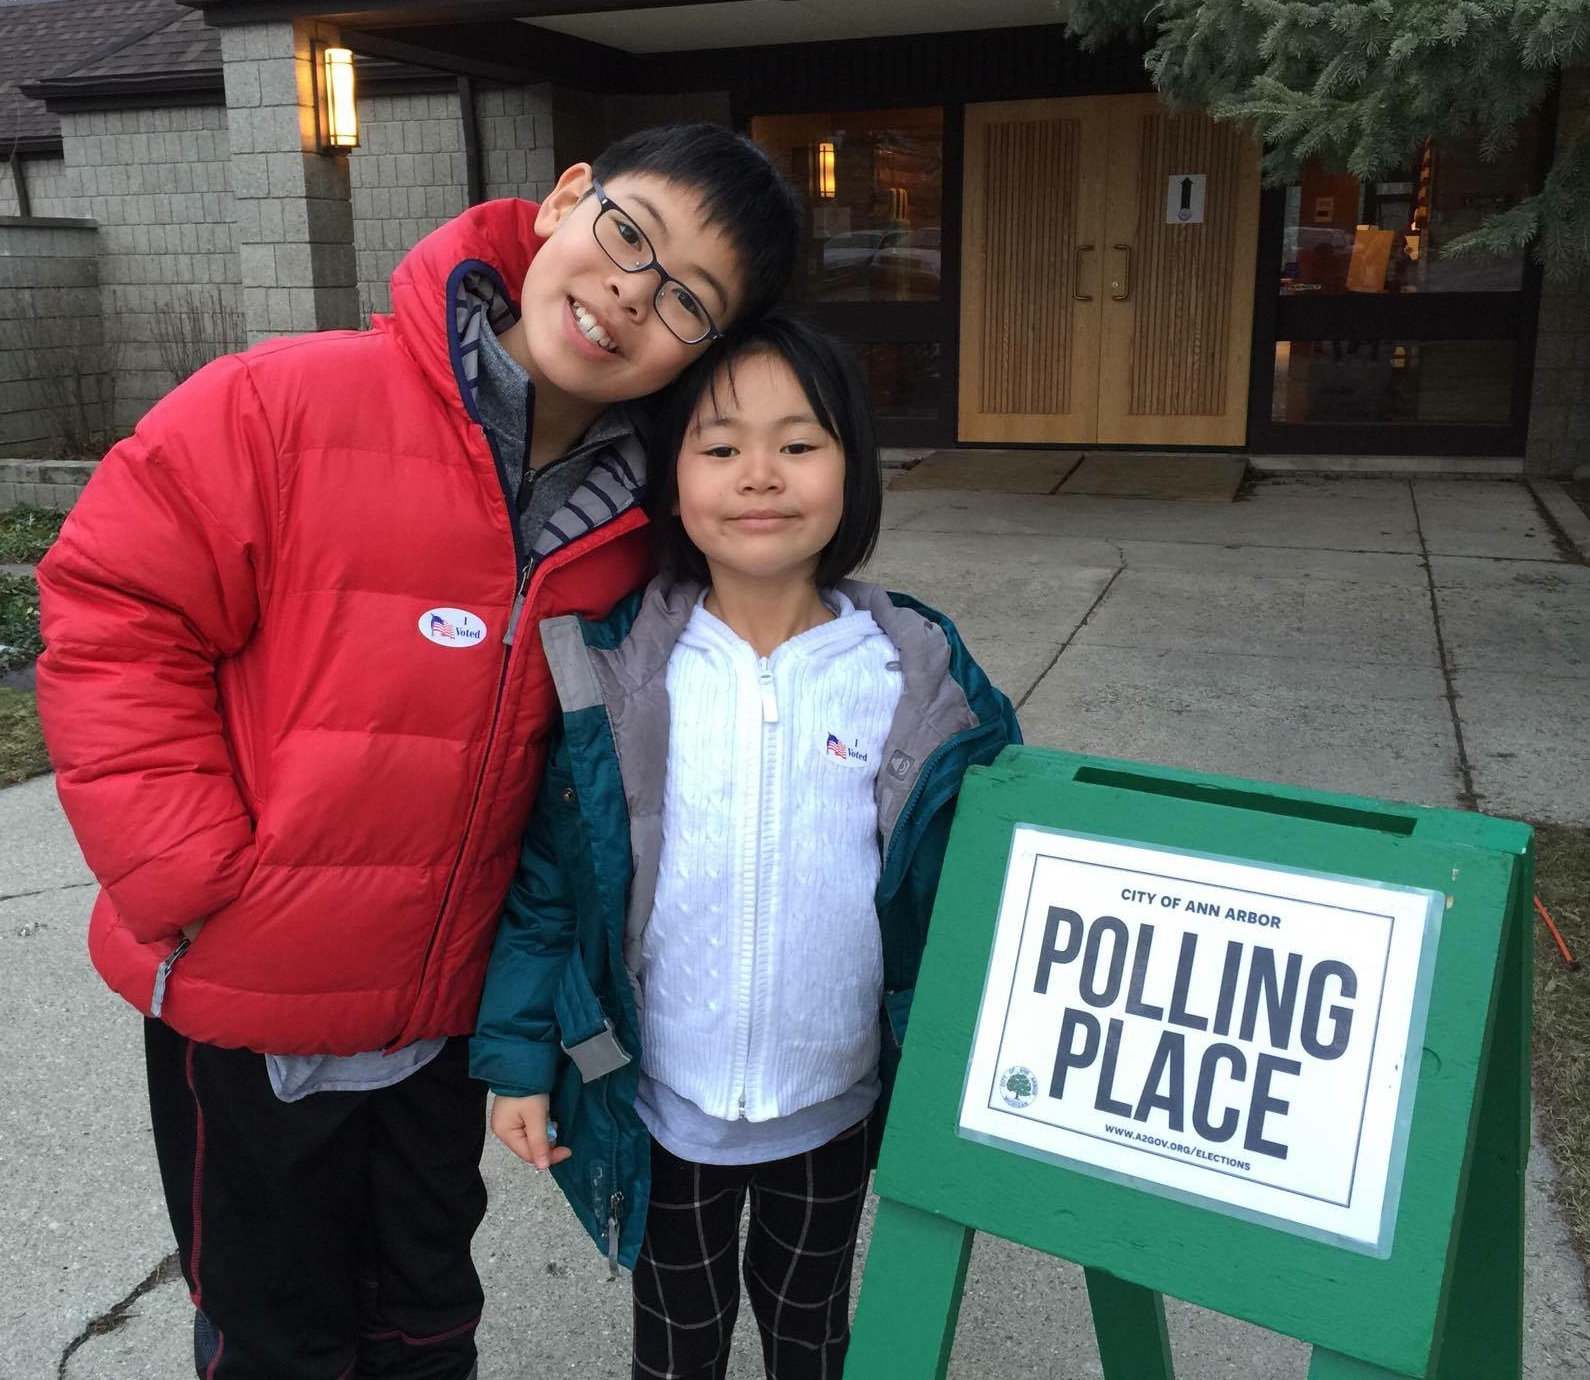 Jaegun and Quynh Song outside the polling place at First United Methodist Church on Green Road (Ward 2, Precinct 8).